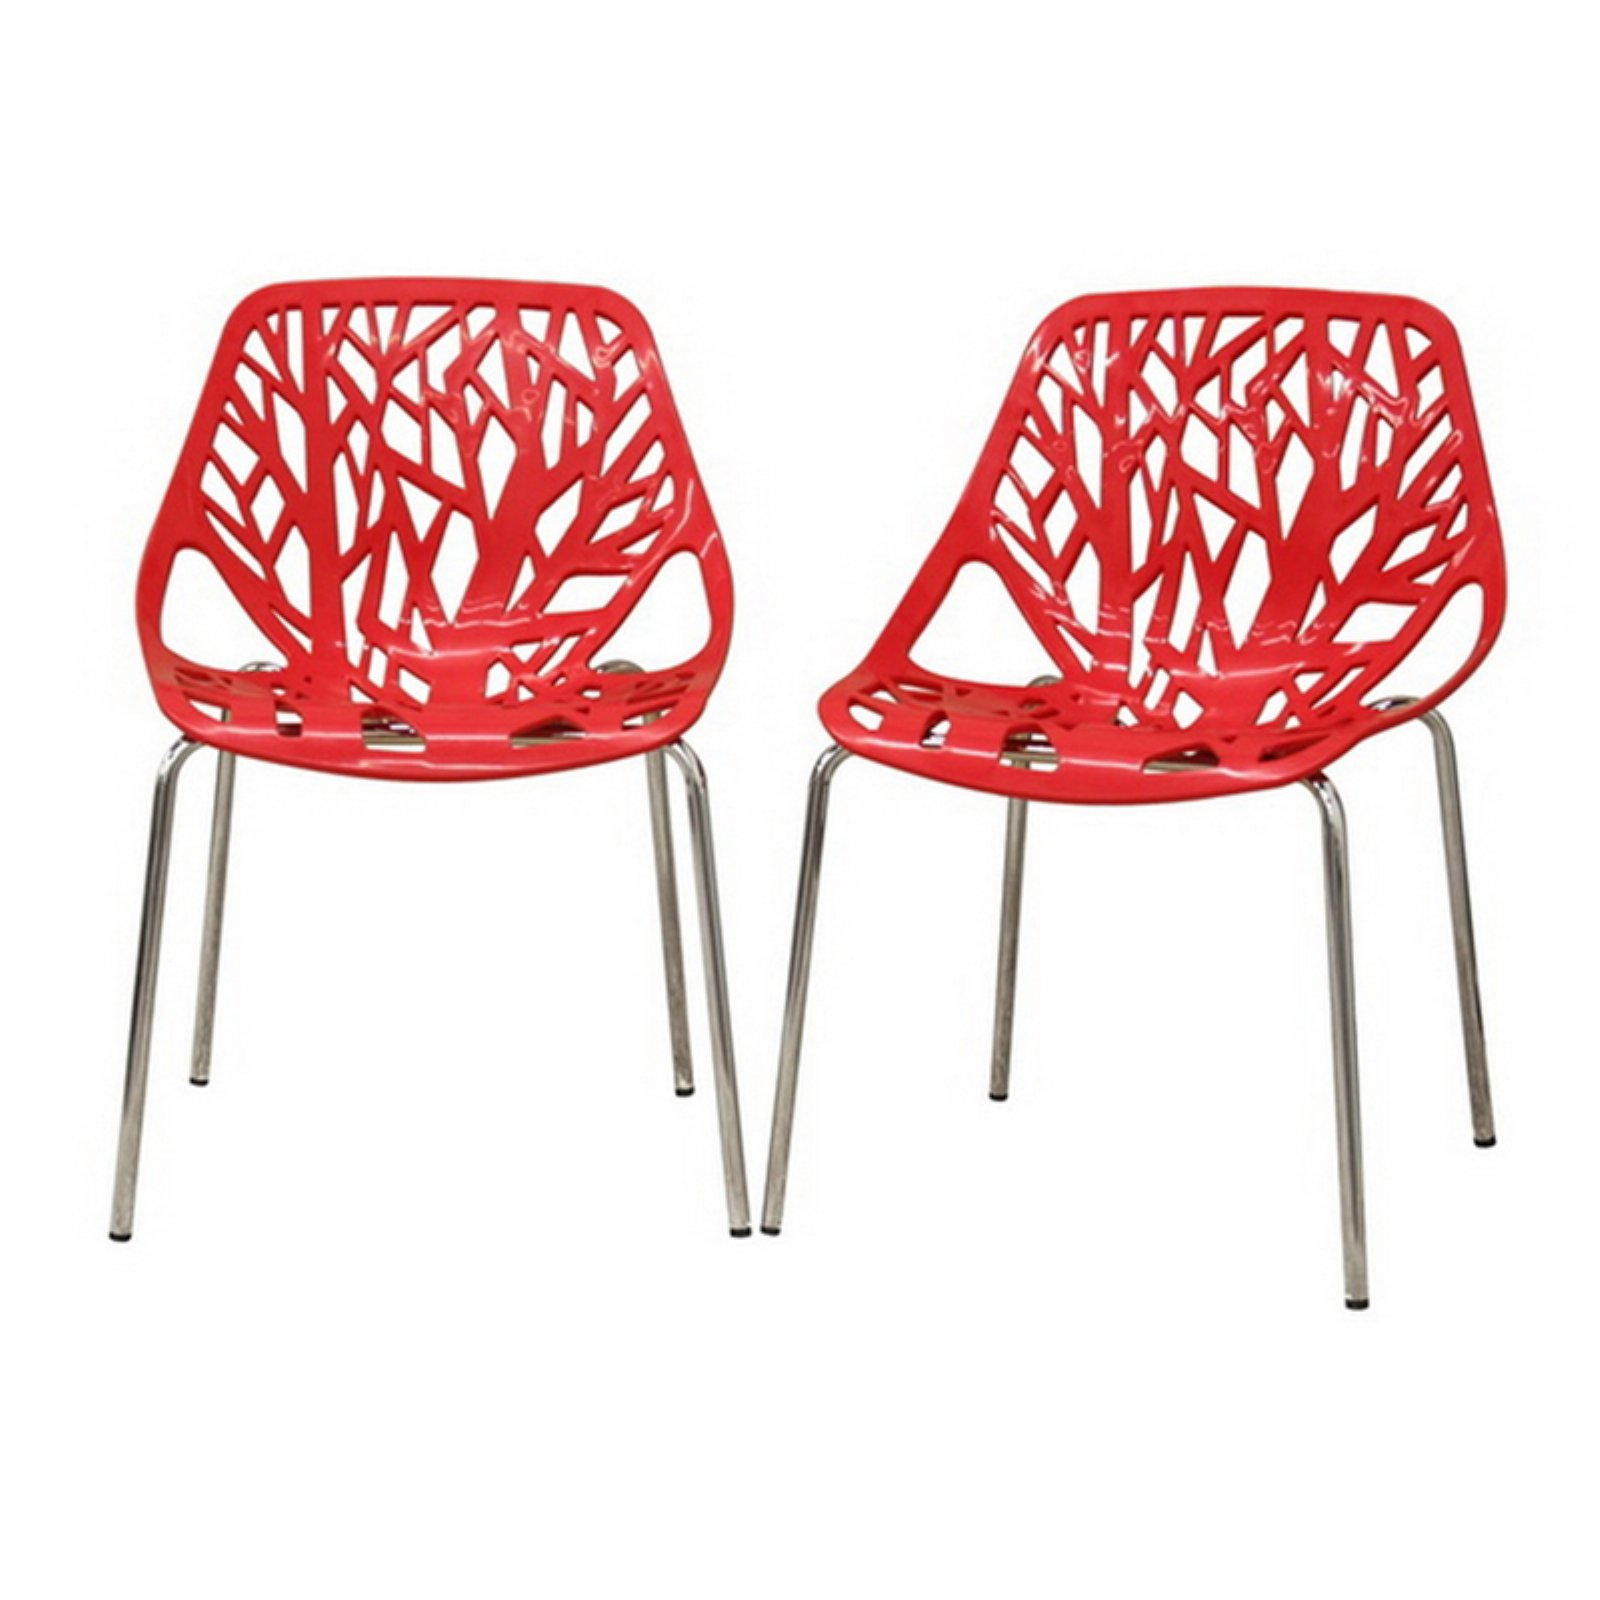 Baxton Studio Birch Sapling Accent / Dining Chair, Red